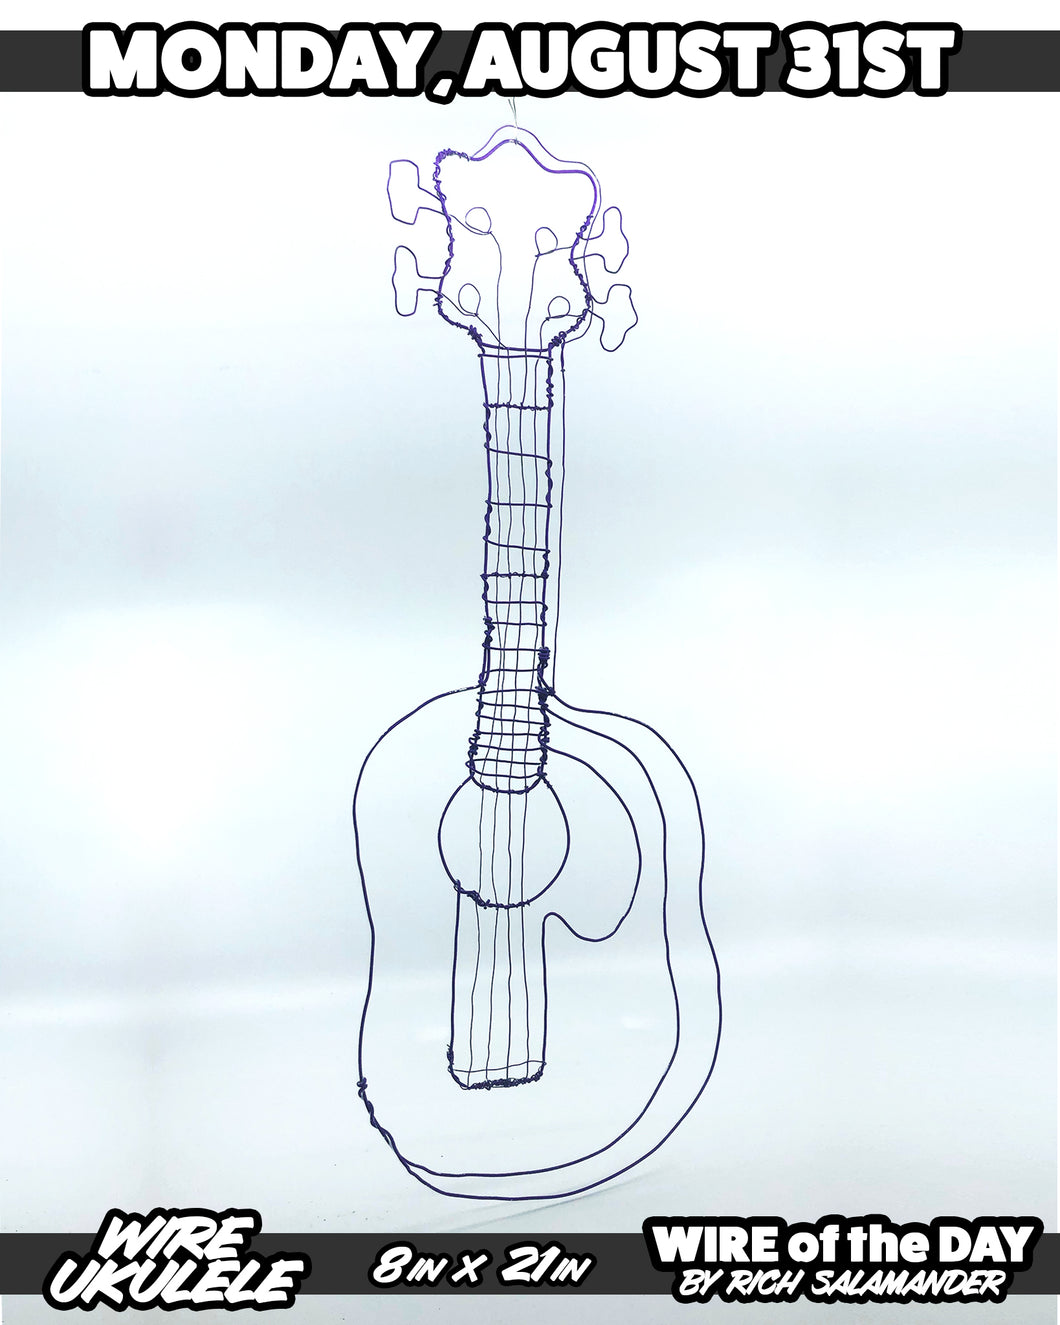 WIRE of the DAY  WIRE UKULELE